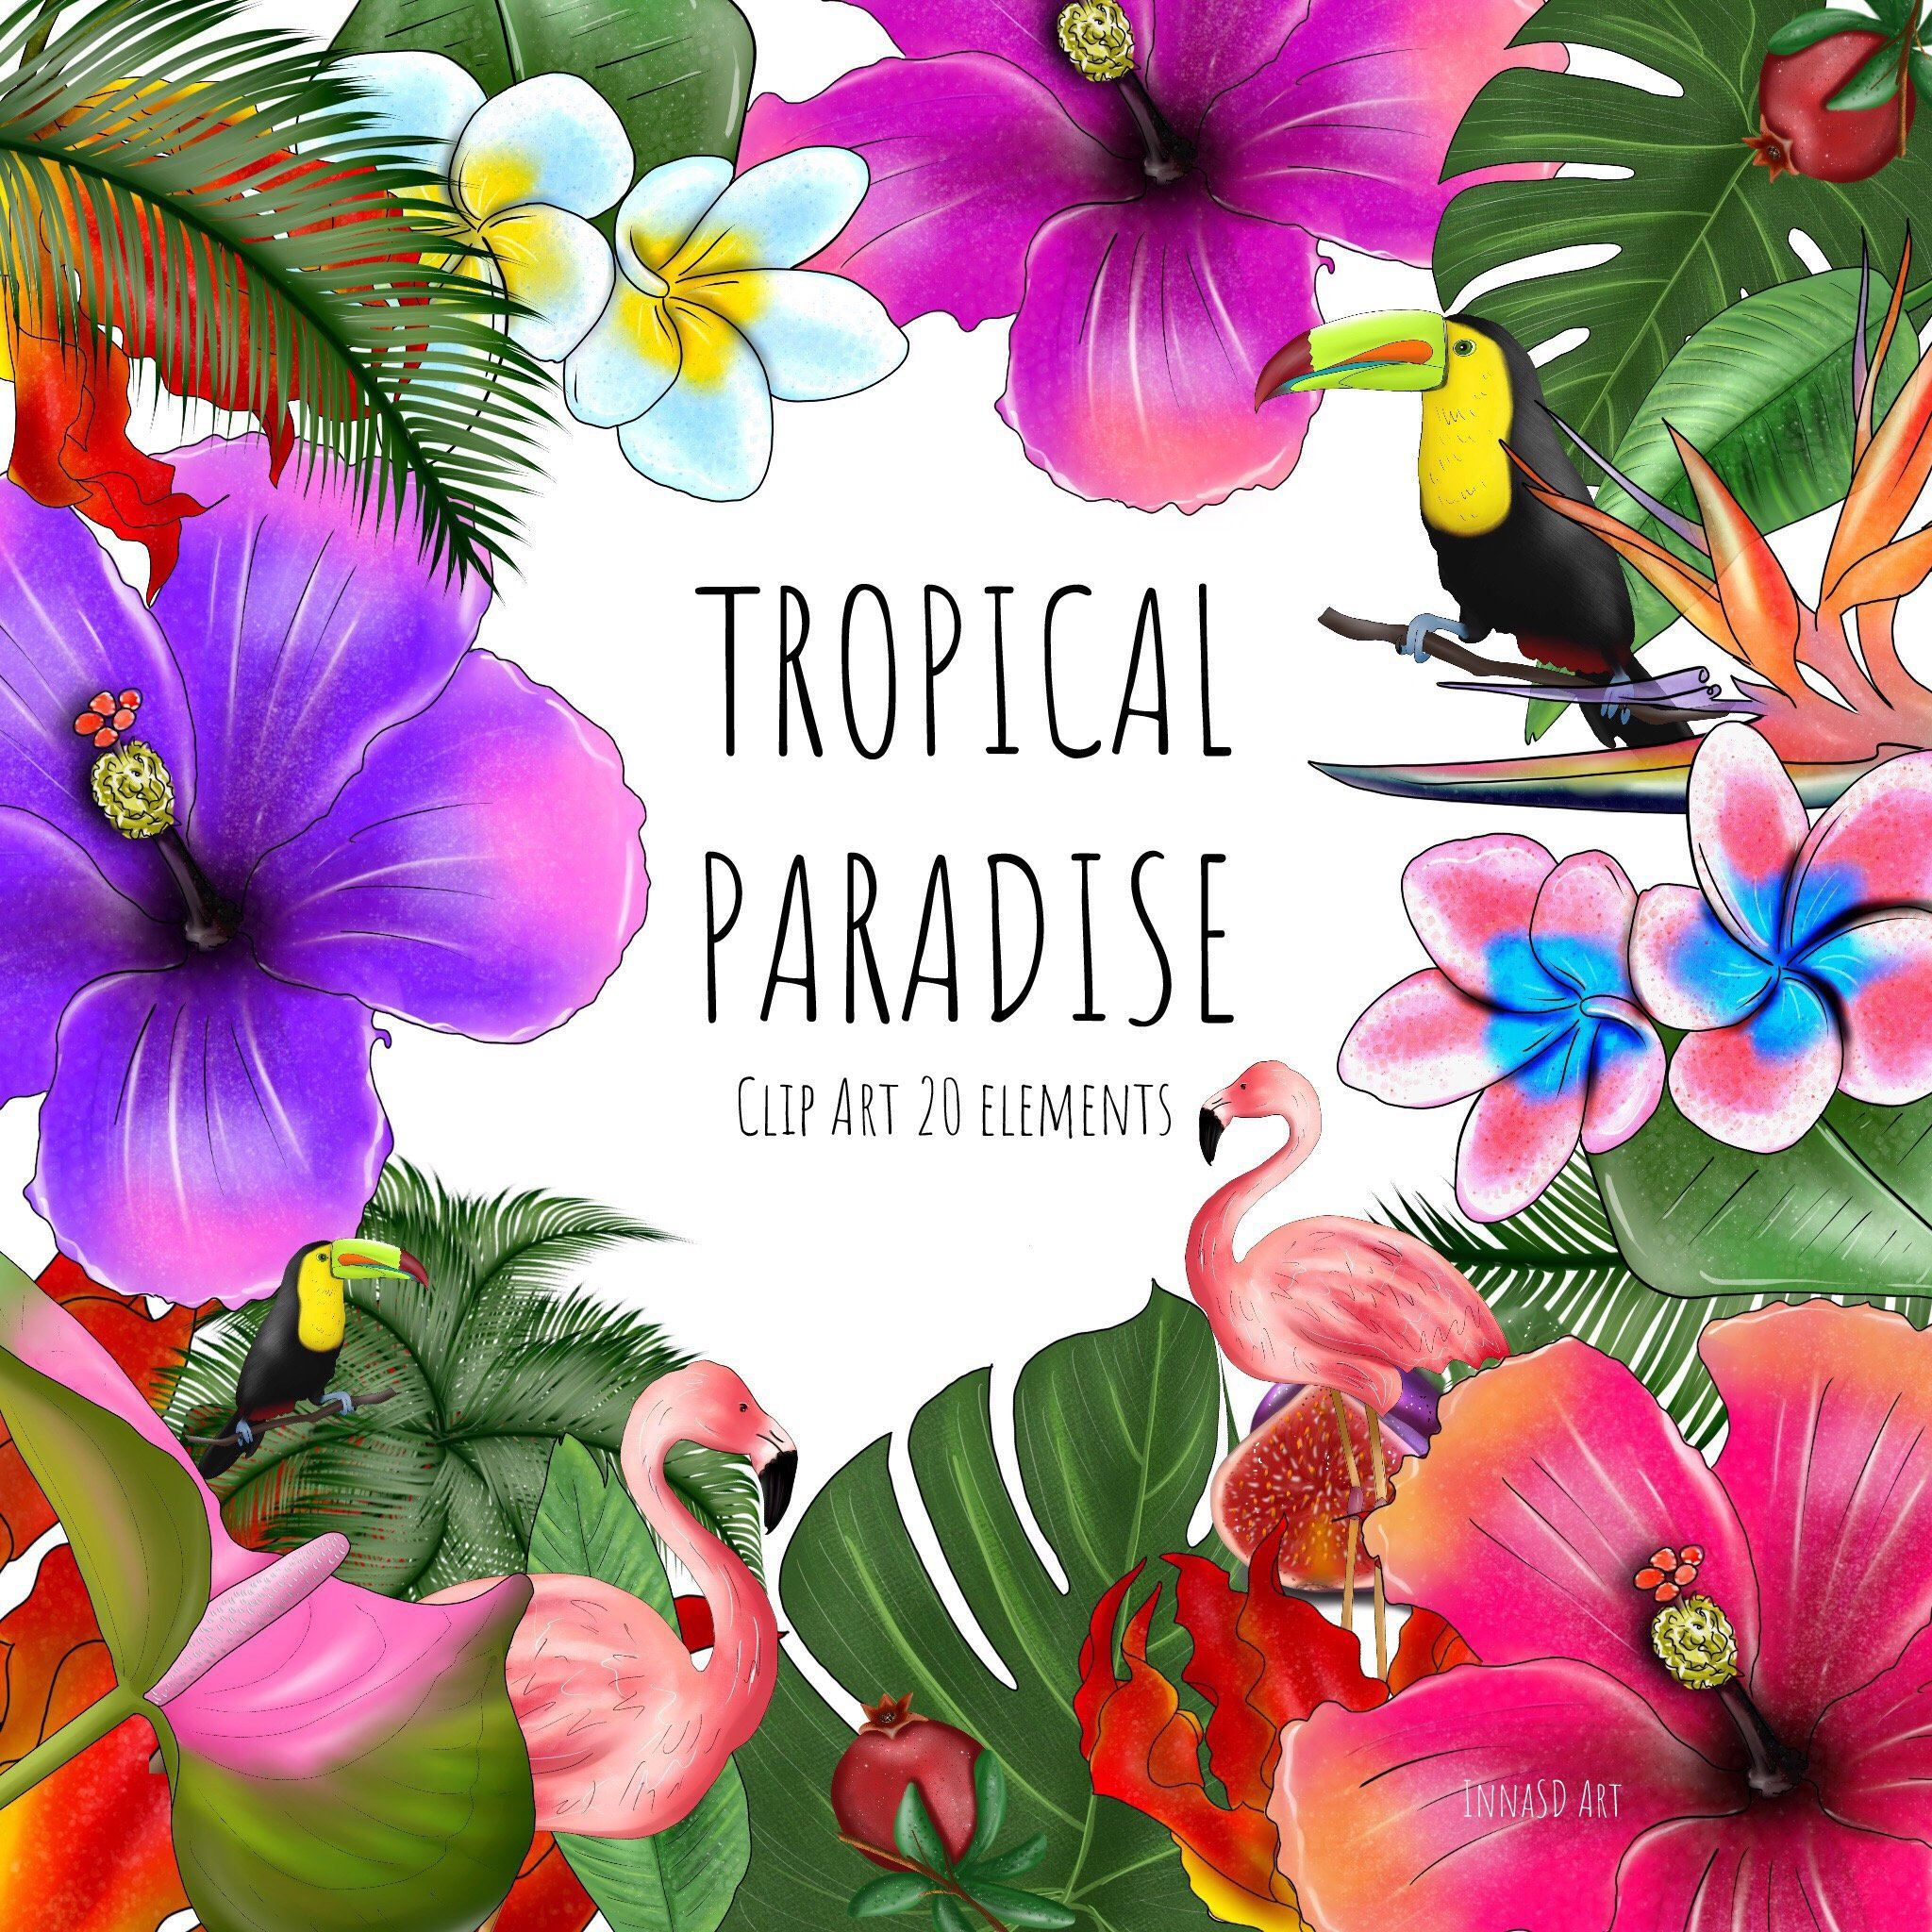 hight resolution of digital floral clipart tropical clipart paradise beach clipart hawaii clipart flamingo clipart tropical flowers clipart jungle clipart by innasdart on